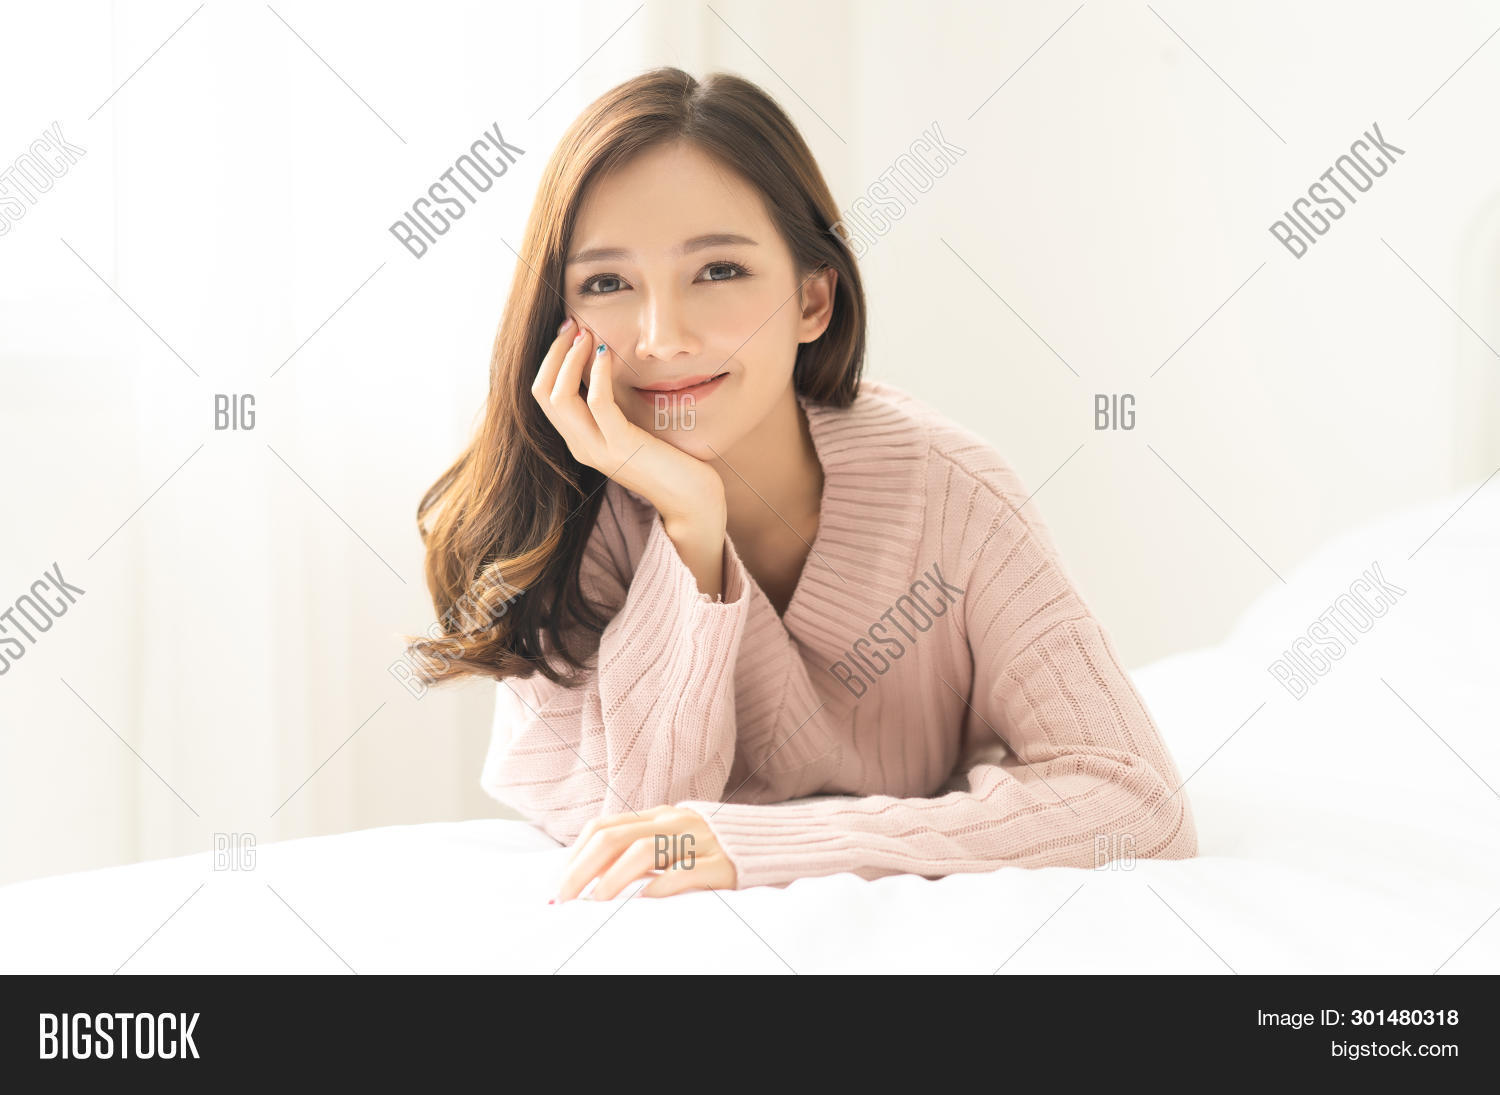 adult,asian,attractive,beautiful,beauty,bedroom,brunette,charming,chinese,chiness,cold,comfortable,cosmetics,cozy,cute,excited,expression,face,facial,fashion,female,girl,happy,health,healthy,home,japan,korea,lady,leisure,lifestyle,mobile,mouth,pensive,people,person,pink,portrait,pretty,room,season,selfie,skin,smiling,style,sweater,window,winter,woman,young